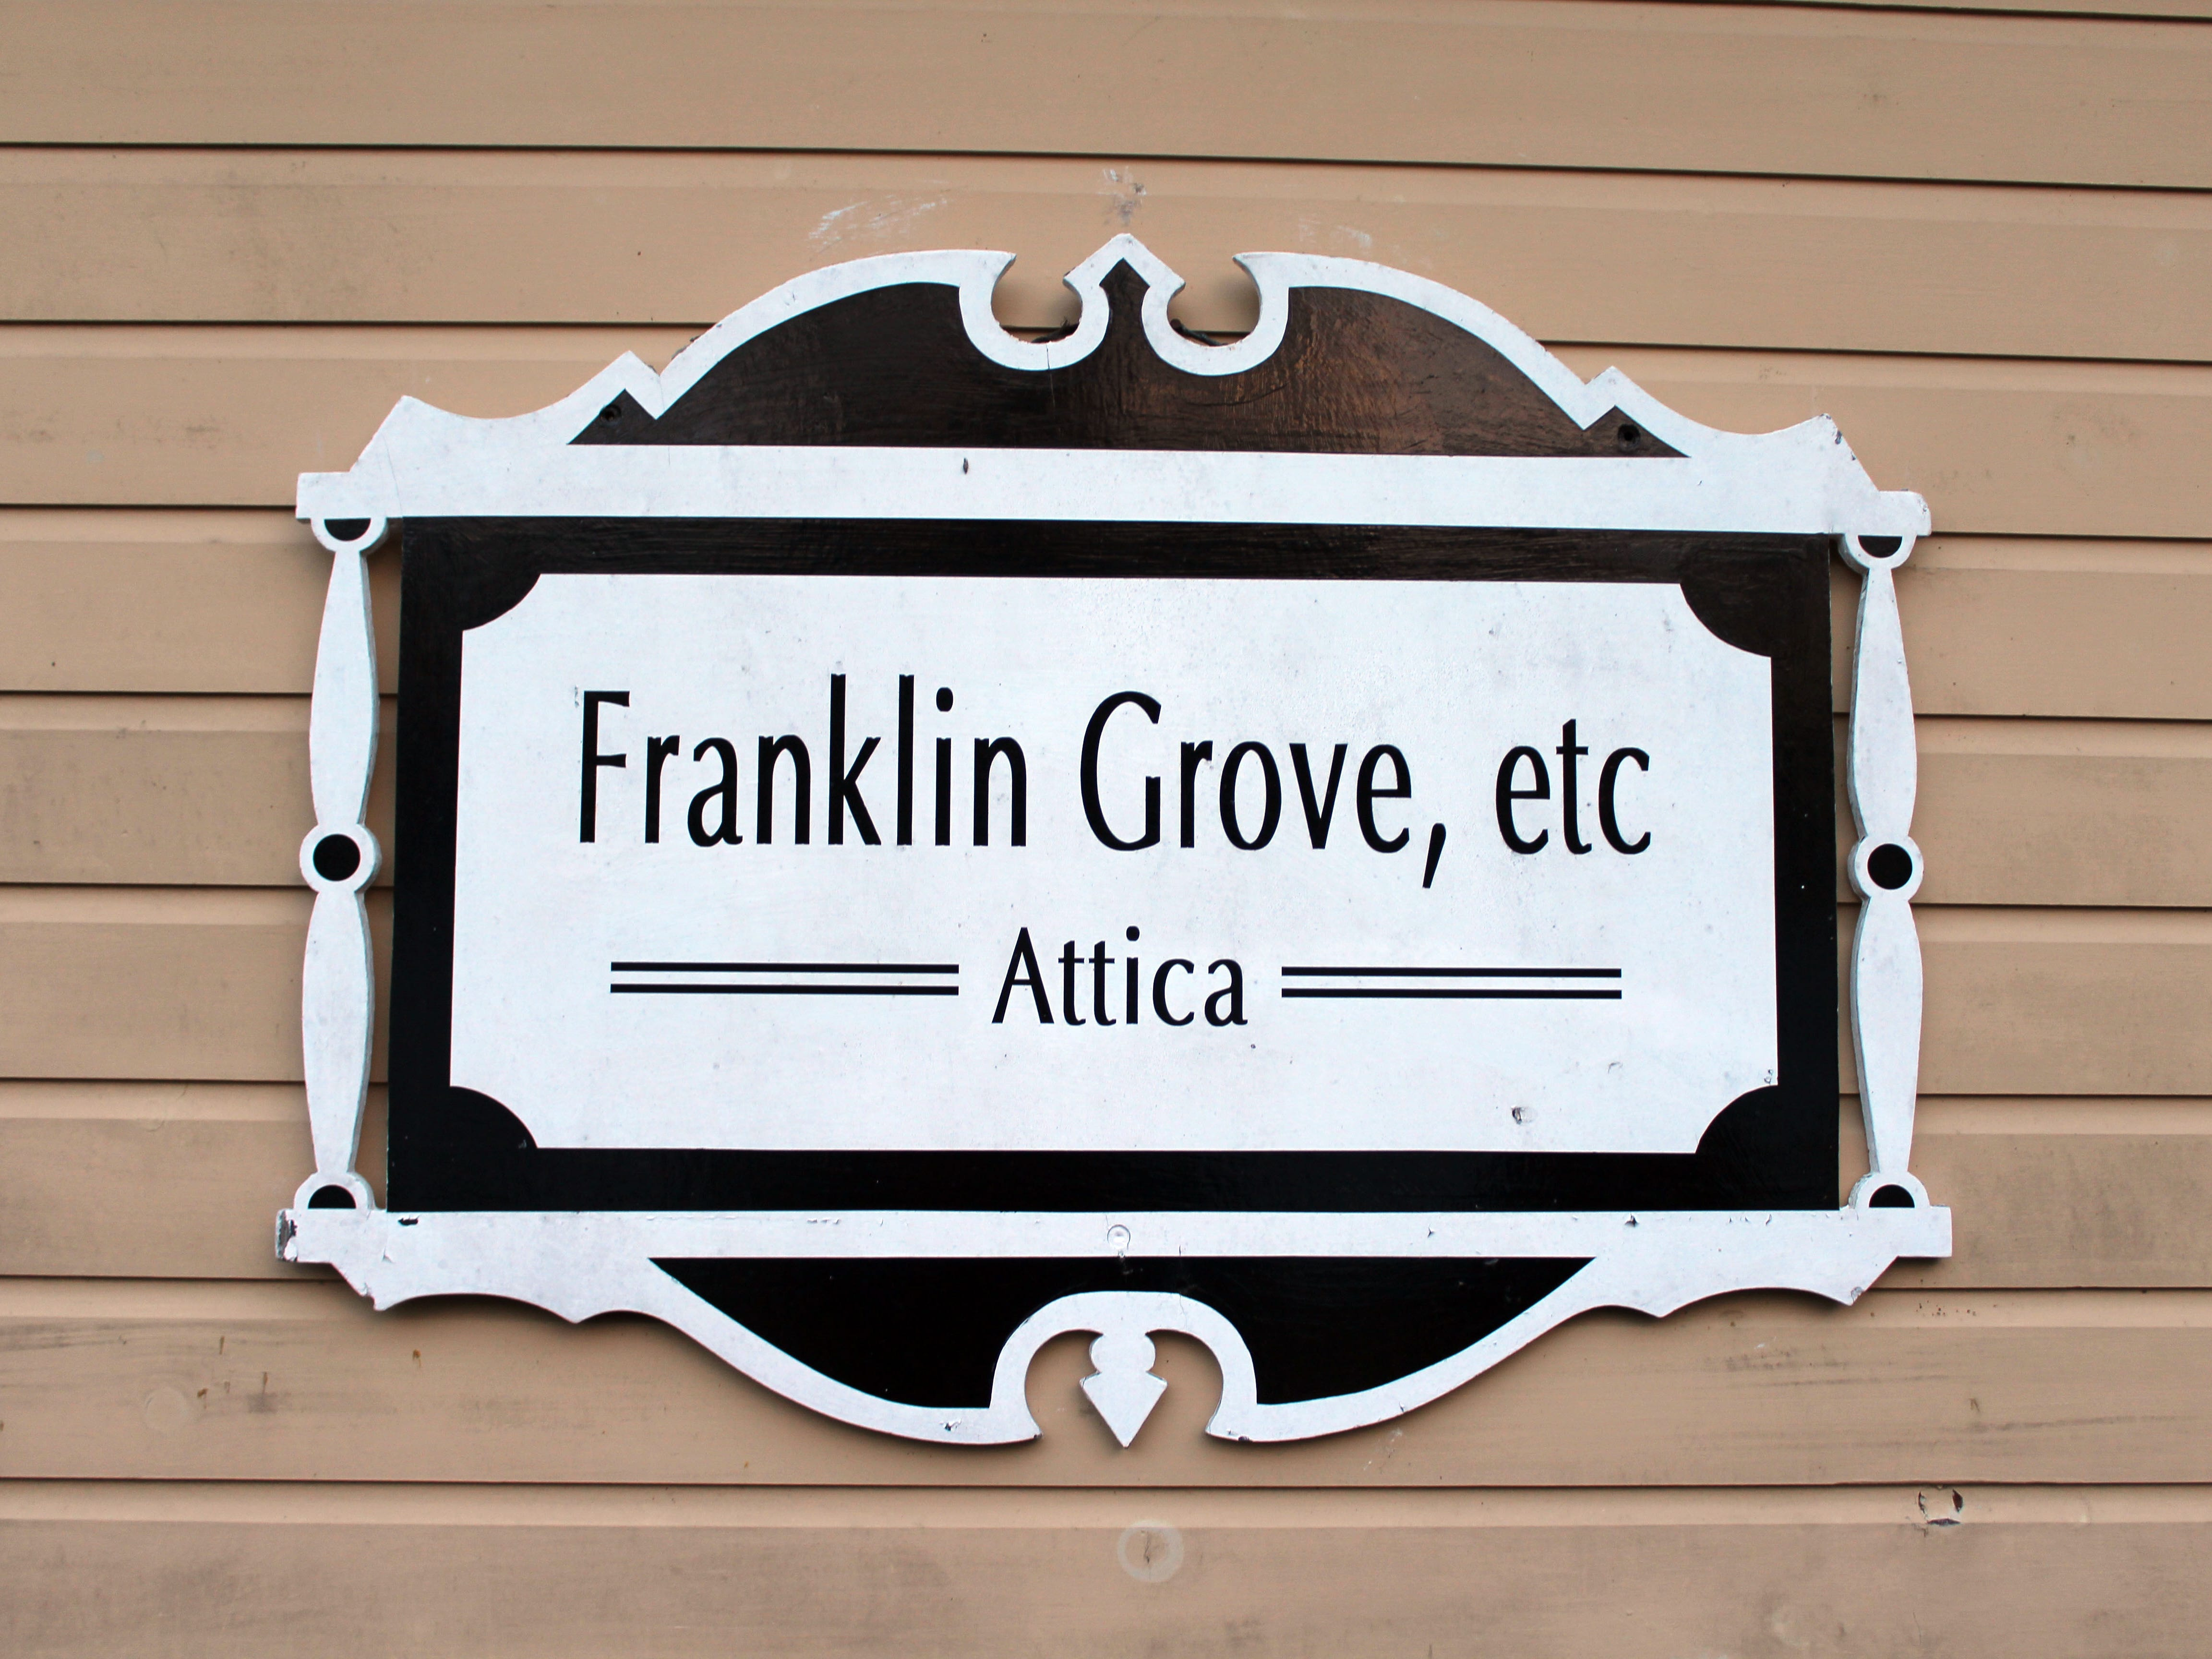 Franklin Grove Etc. was named for Franklin Grove, Ill., which was near owner Cathy Cryor Burgweger's grandmother's farm, where she enjoyed many a family dinner.